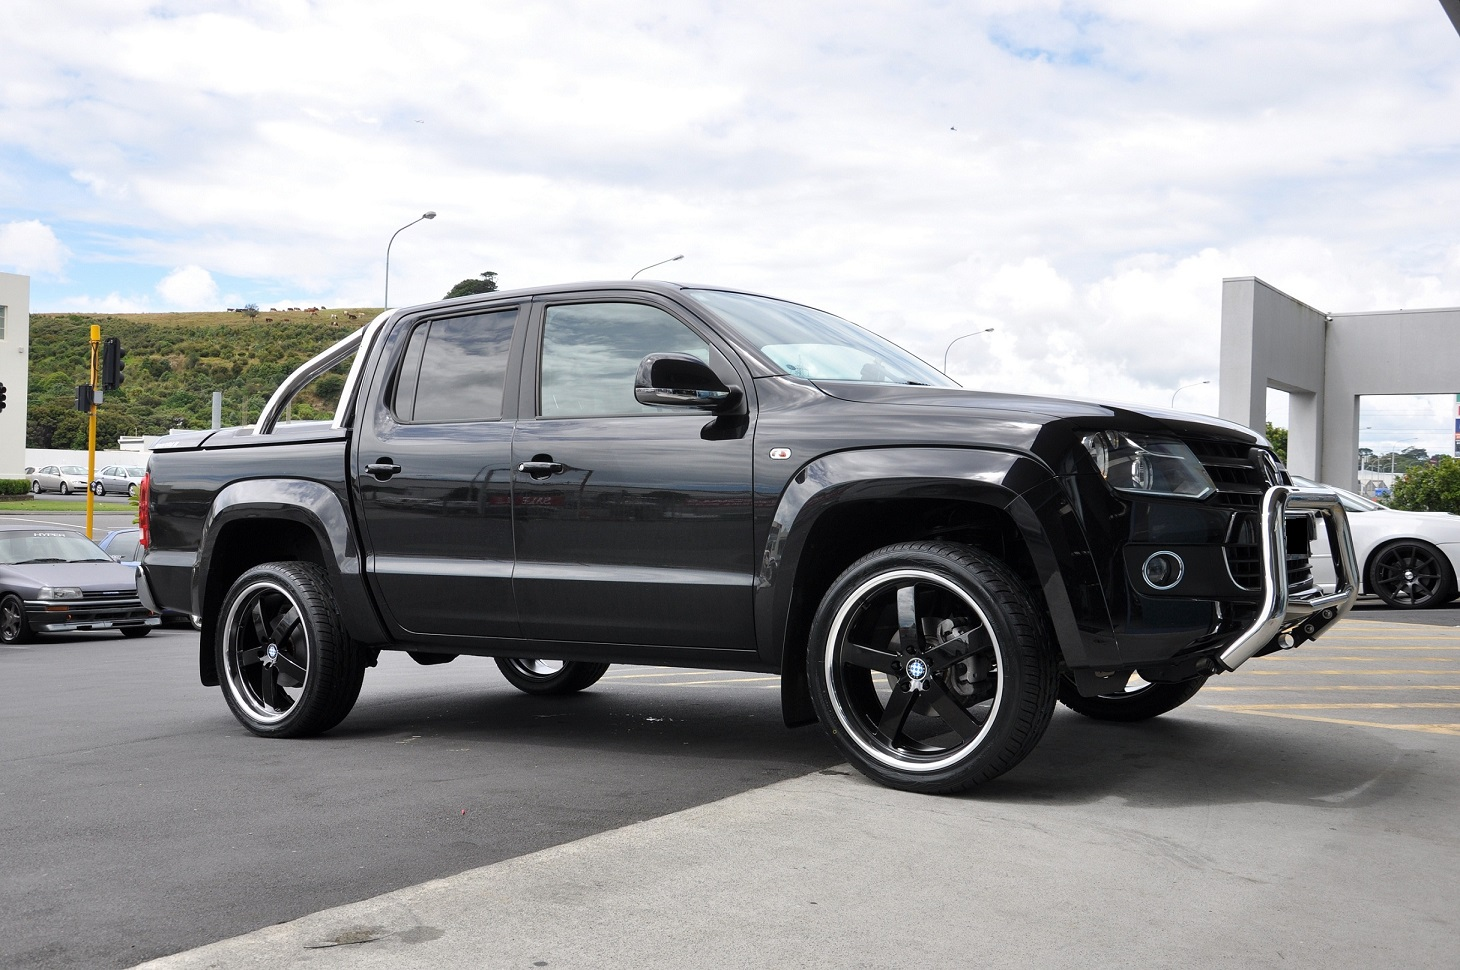 VW Amarok on Beyern Rapp